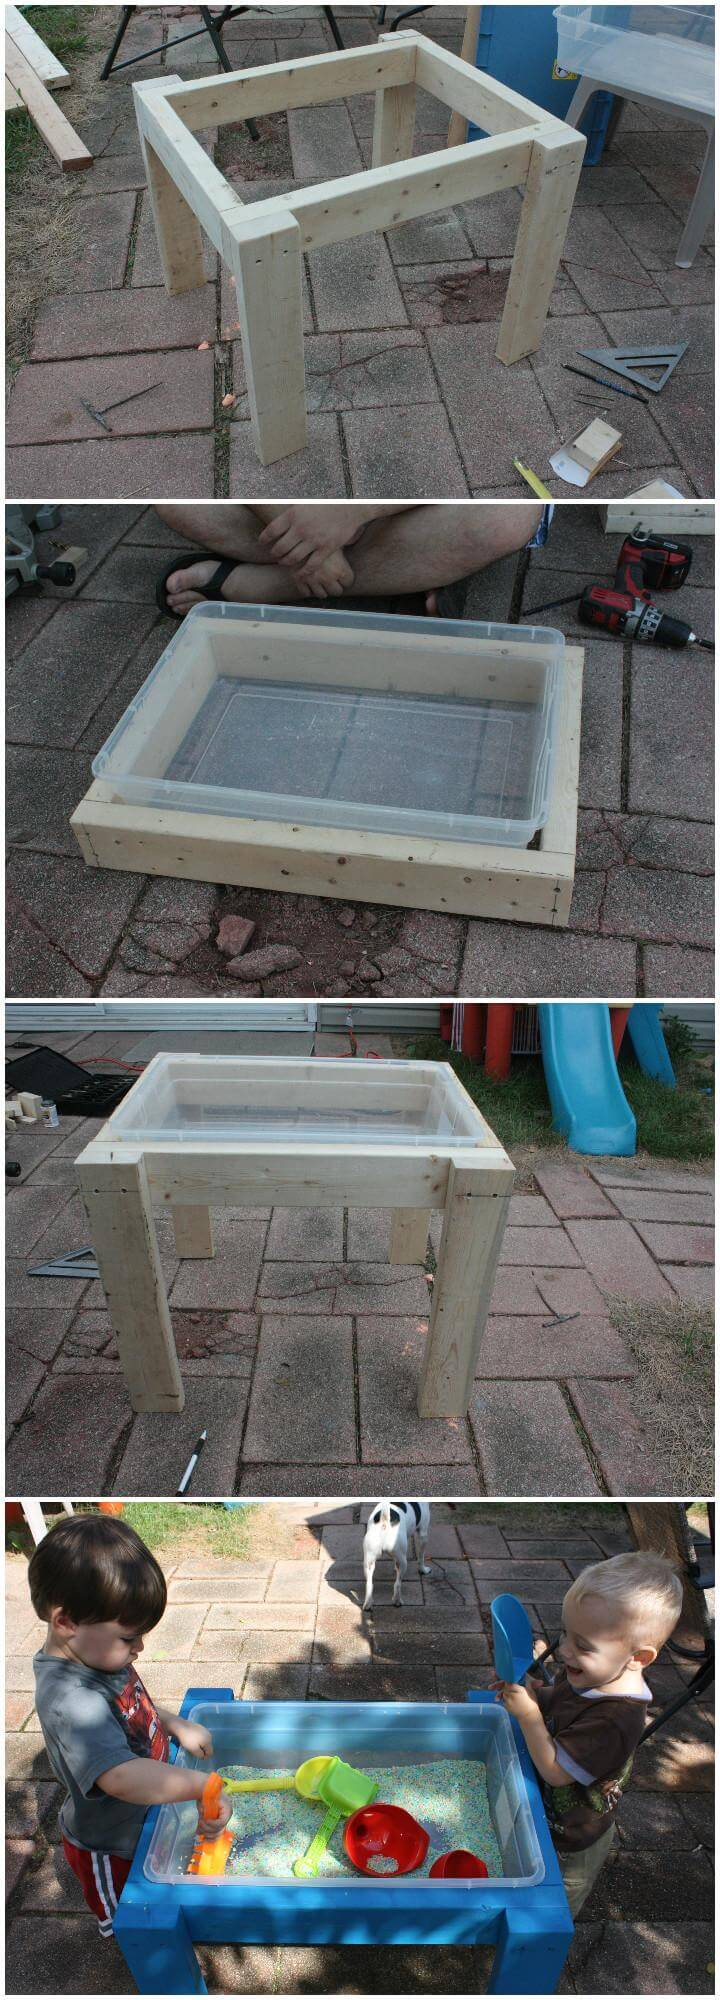 60 Diy Sandbox Ideas And Projects For Kids Page 8 Of 10